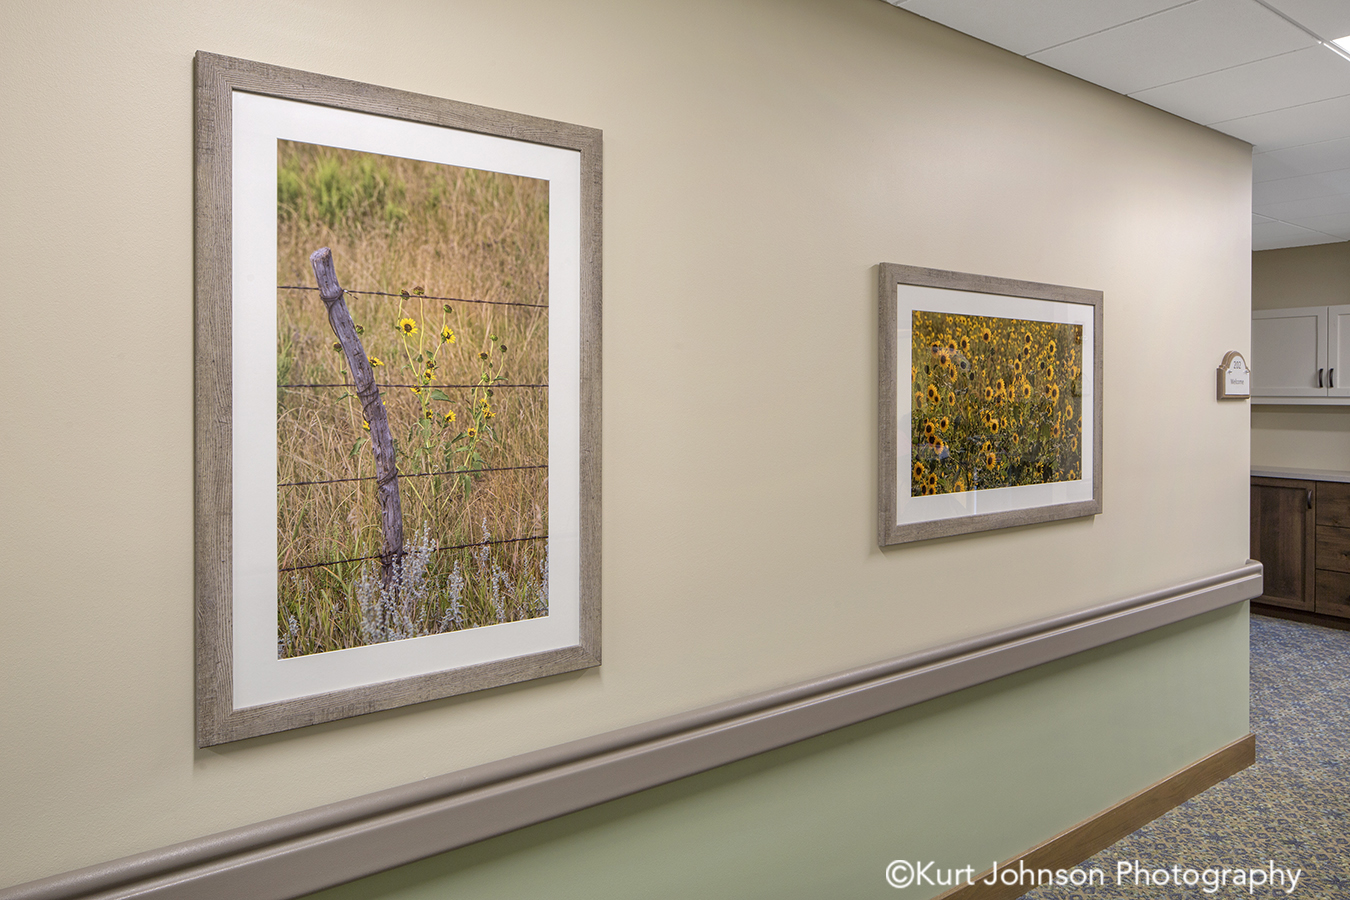 Broken Bow senior living installation framed fine art photography install midwest healthcare